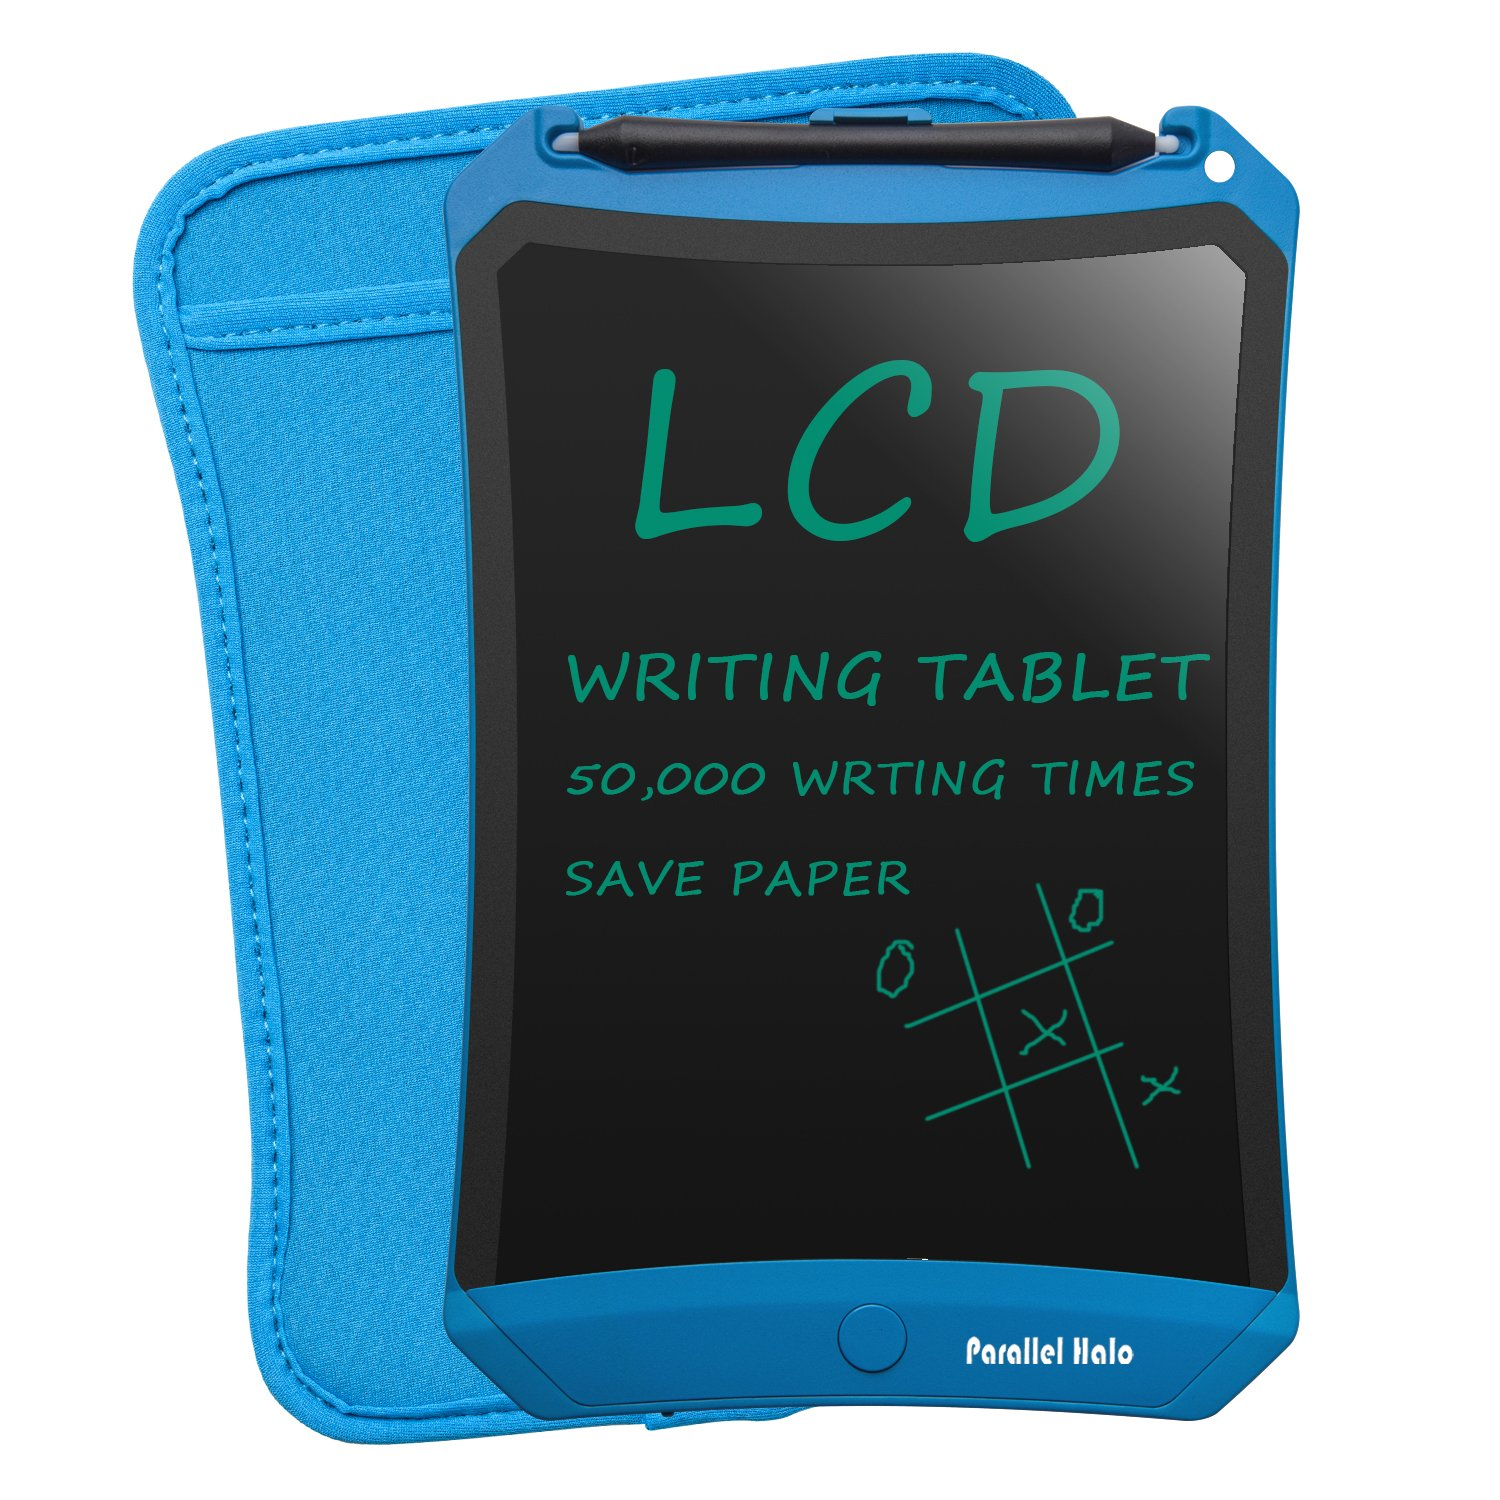 Parallel Halo 8.5 Inch LCD Writing tablet-Electronic Writing Board Doodle Board Drawing Board Erasable Black Chalkboard Sticky Notes Office Memo Pads